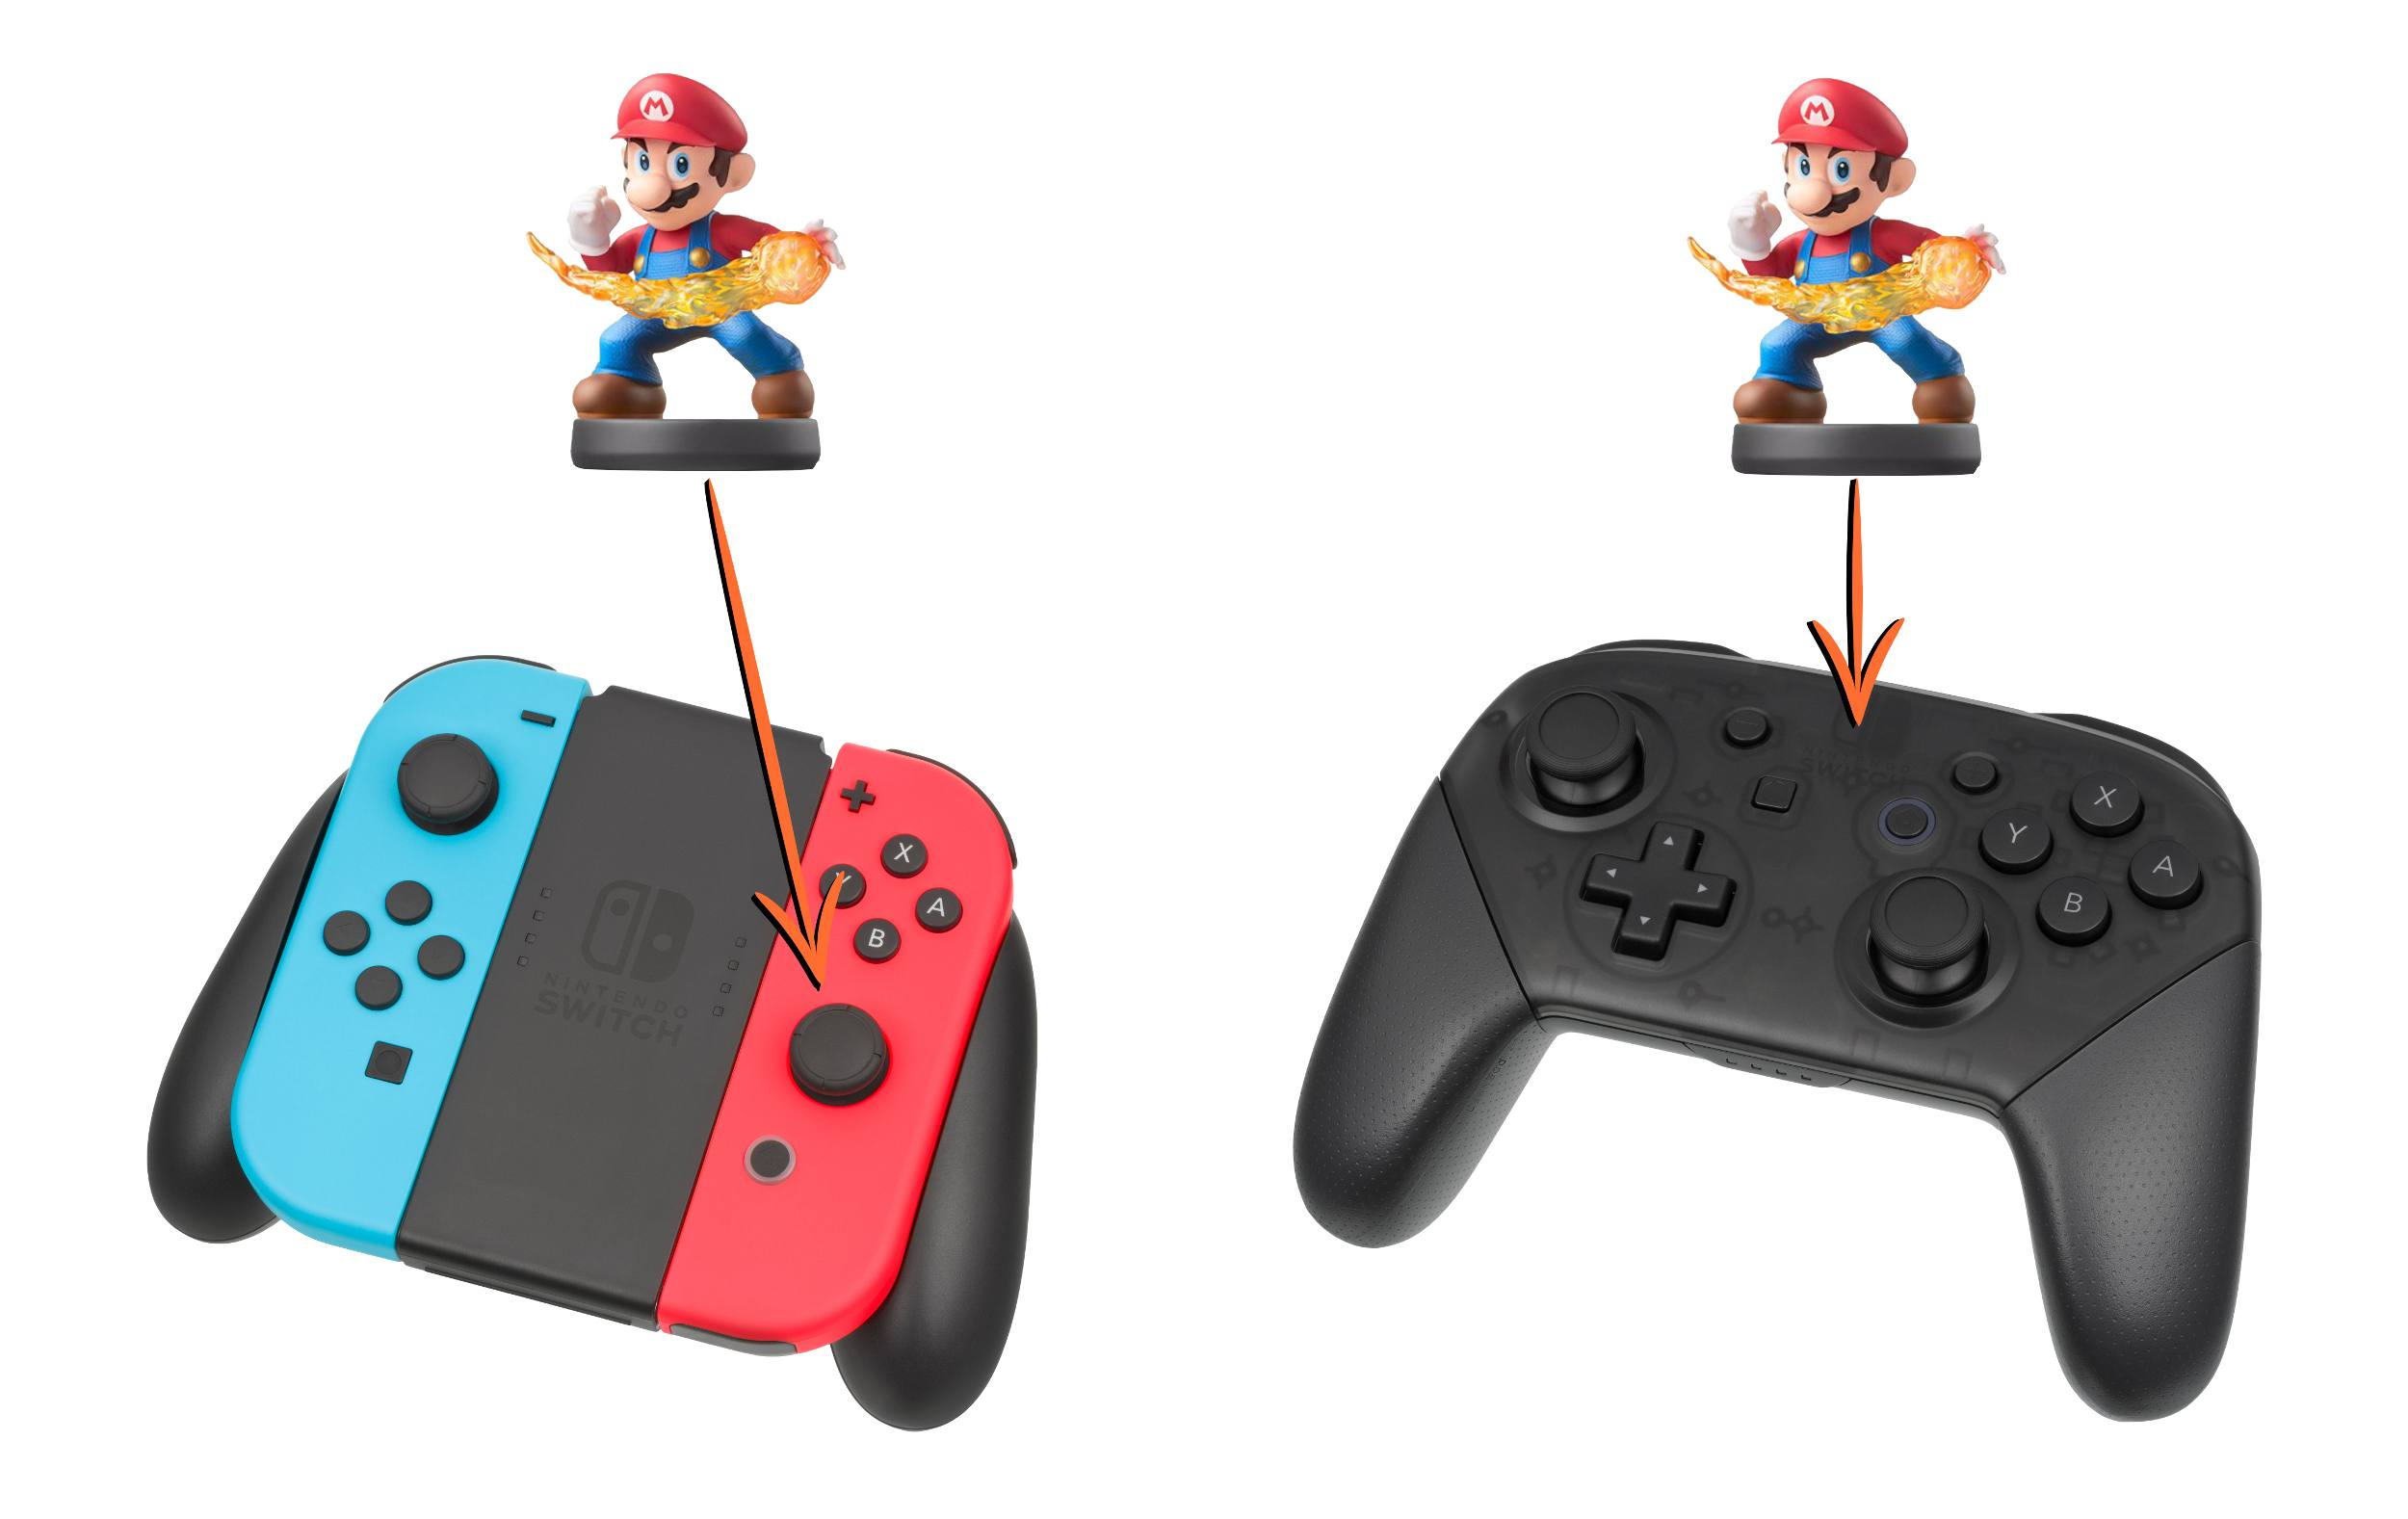 How To Use Amiibo On Nintendo Switch 8 Way Joystick Scan An With